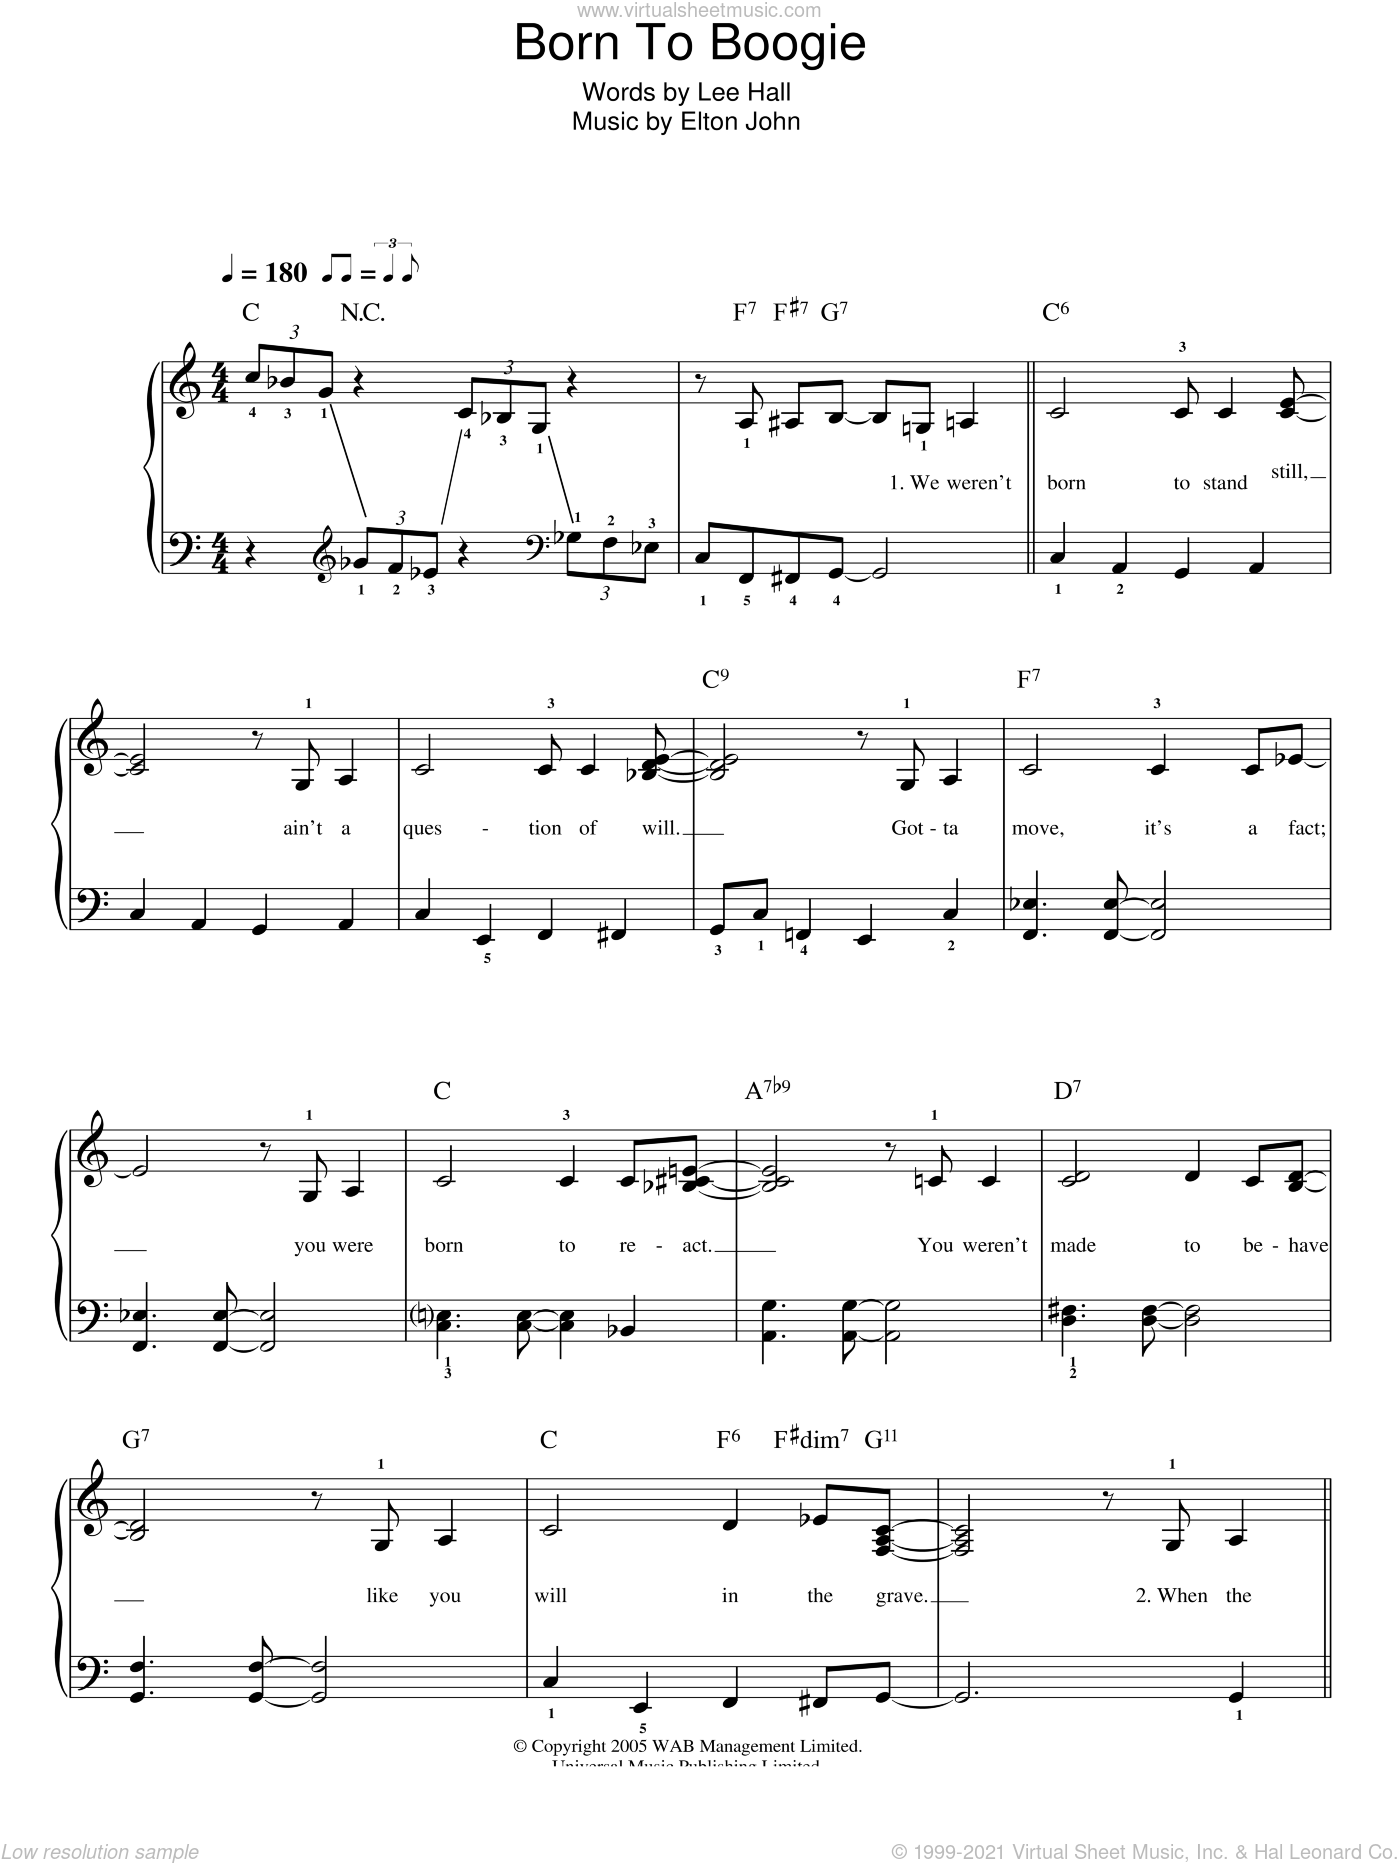 Born To Boogie sheet music for piano solo by Elton John, easy. Score Image Preview.